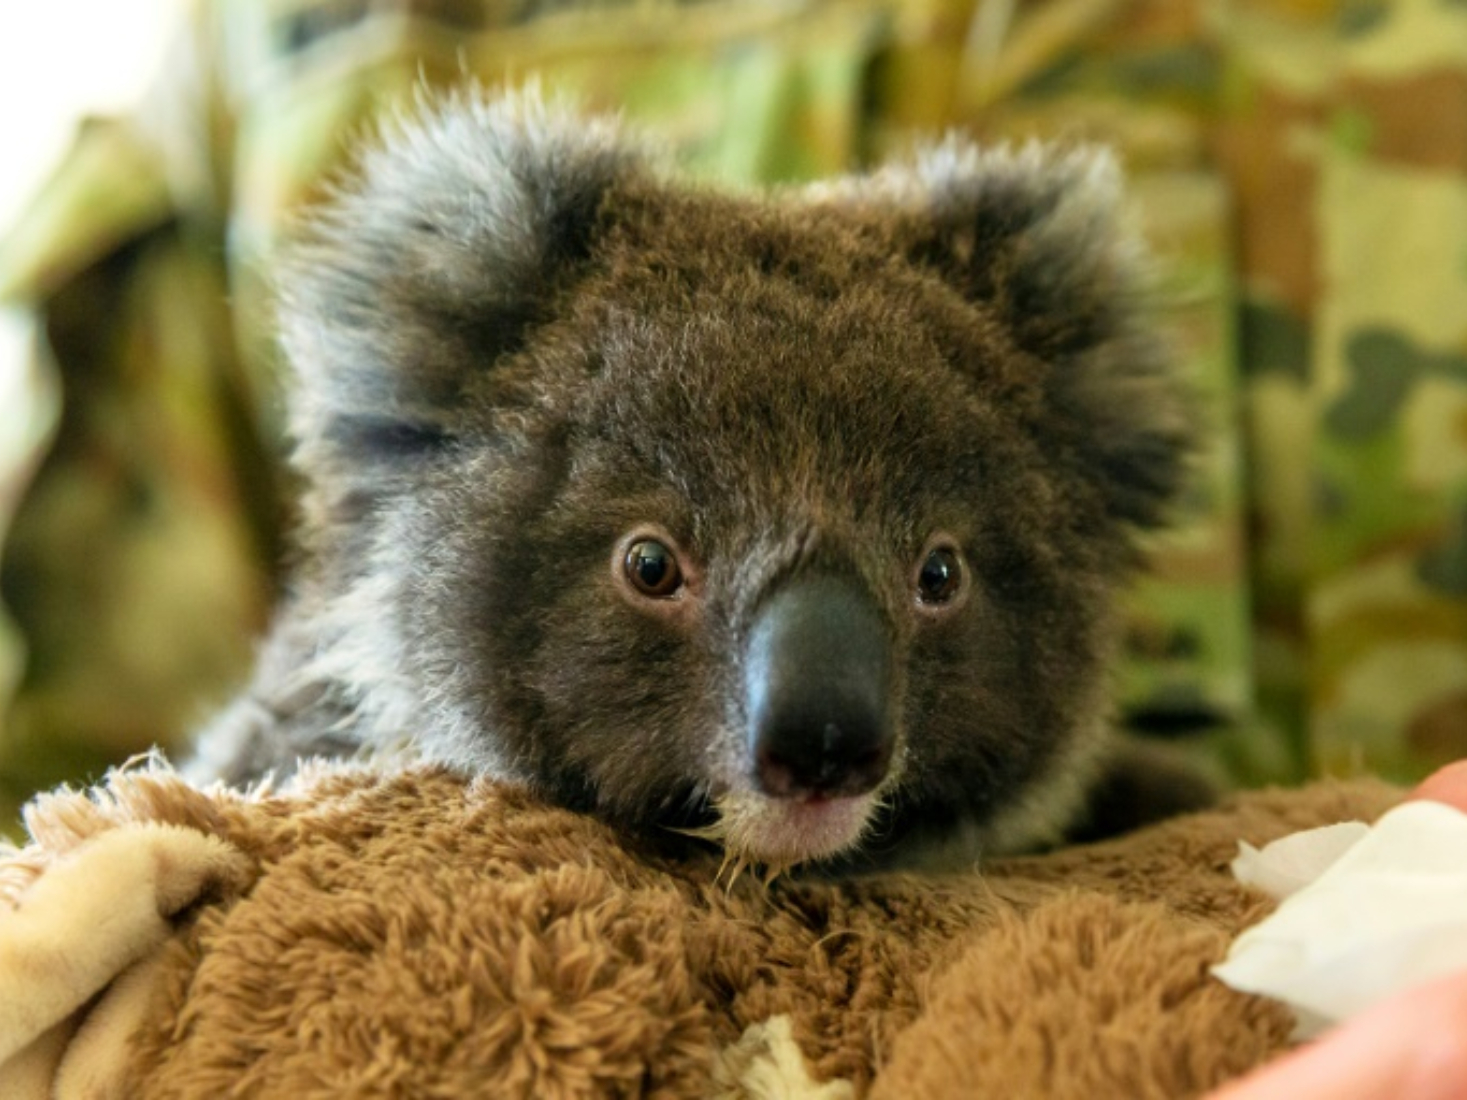 Australia launches investigation after dozens of koalas found dead in land-clearing